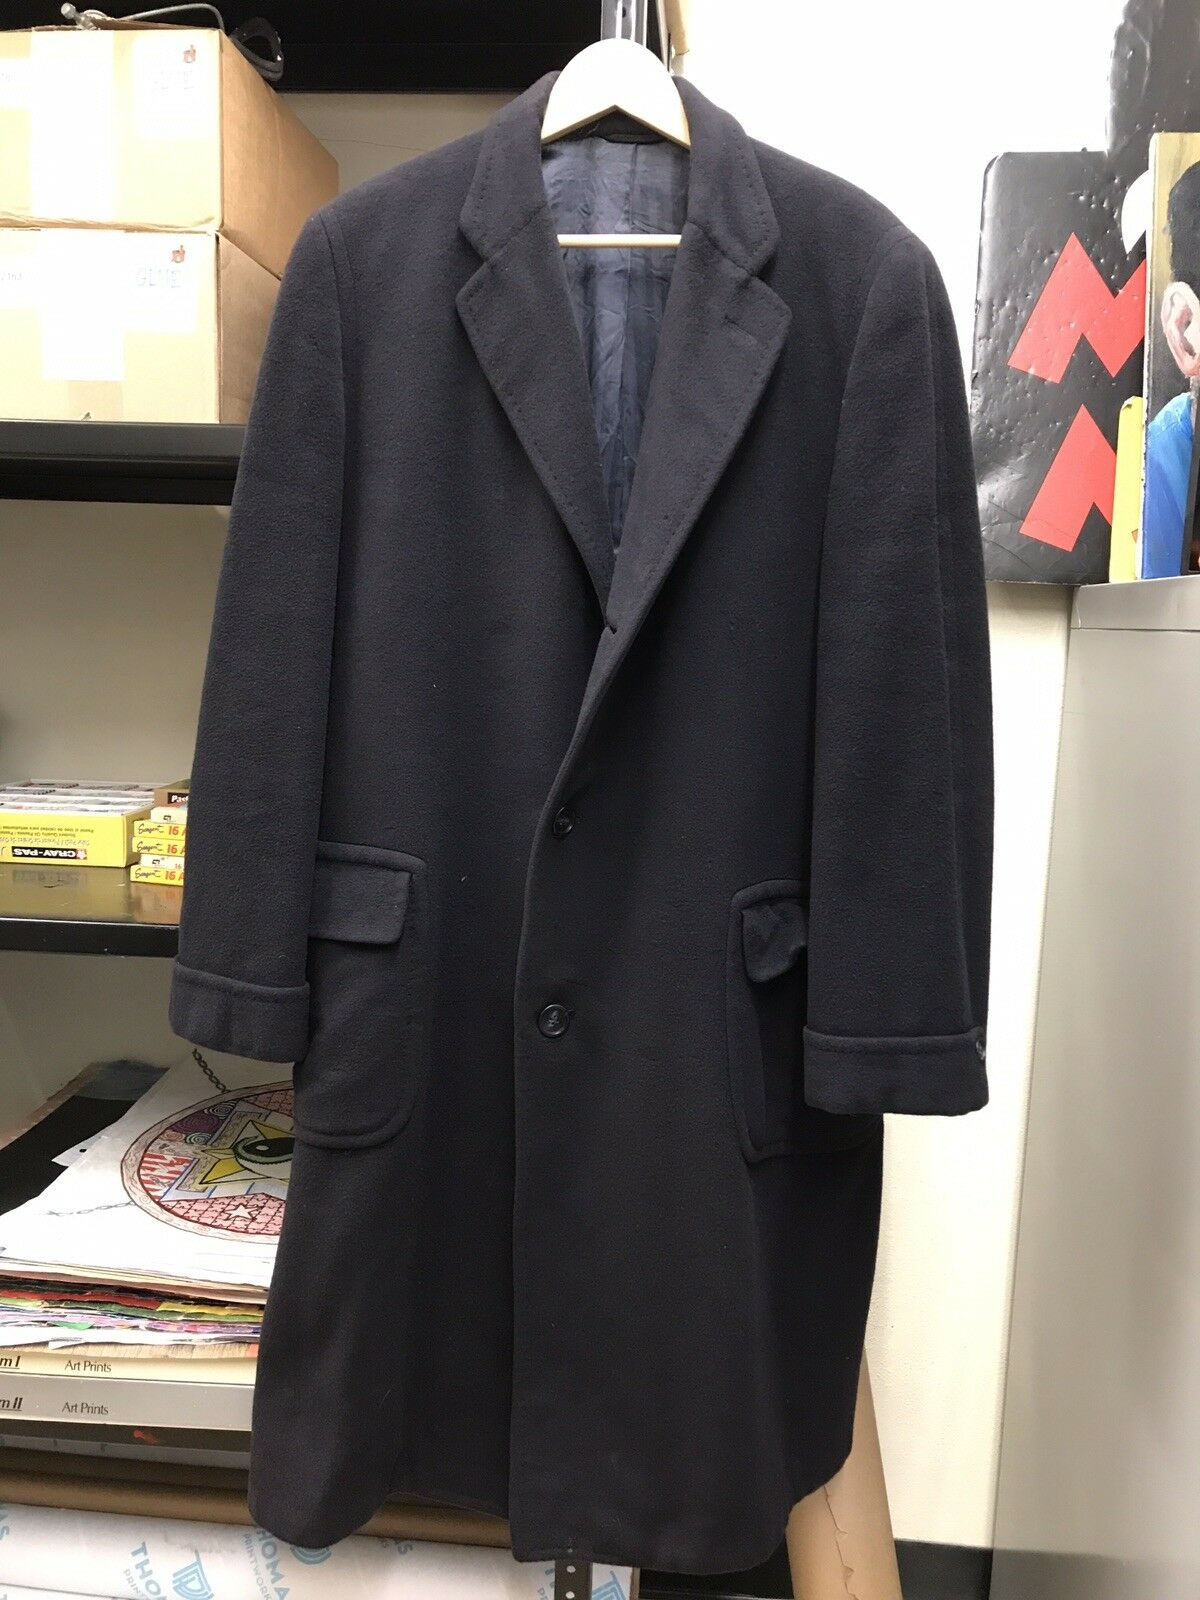 VINTAGE 100% IMPORTED CASHMERE TRENCH COAT HELLER'S MYRTLE AVE BROOKLYN LARGE 42